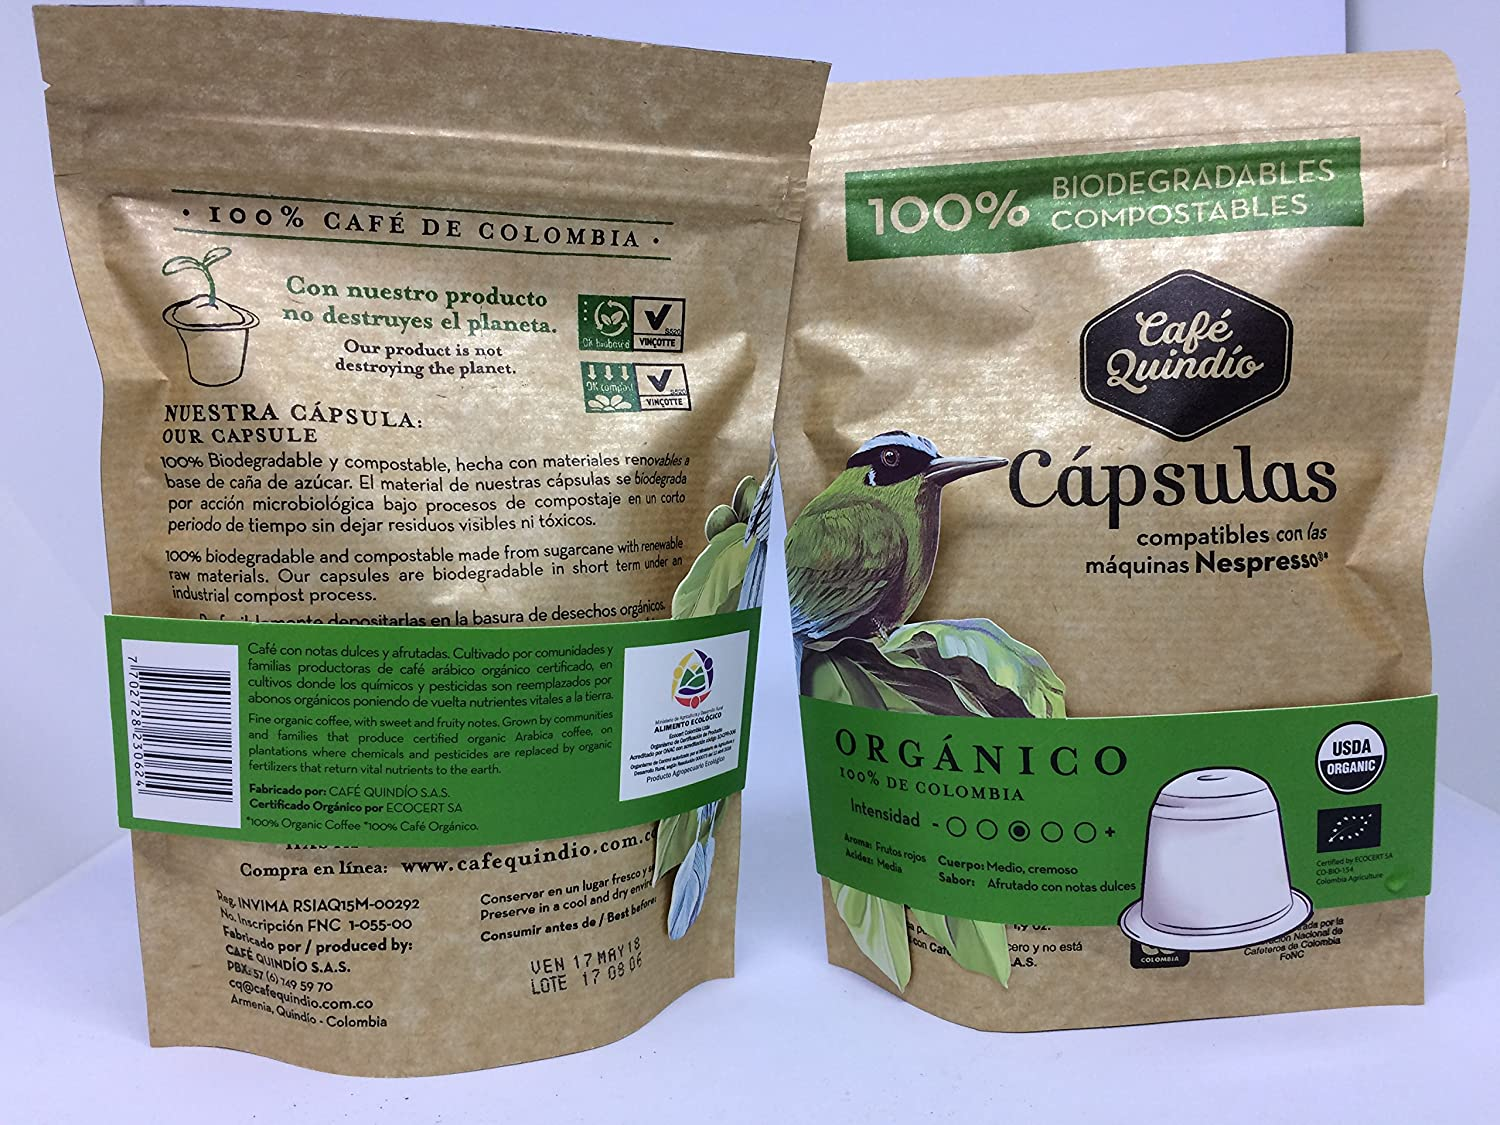 ORGANIC Coffee Capsules, Coffee Quindio, Nespresso (Compatible),100% Colombian Coffee,Medium Roast Organic Coffee: Amazon.com: Grocery & Gourmet Food